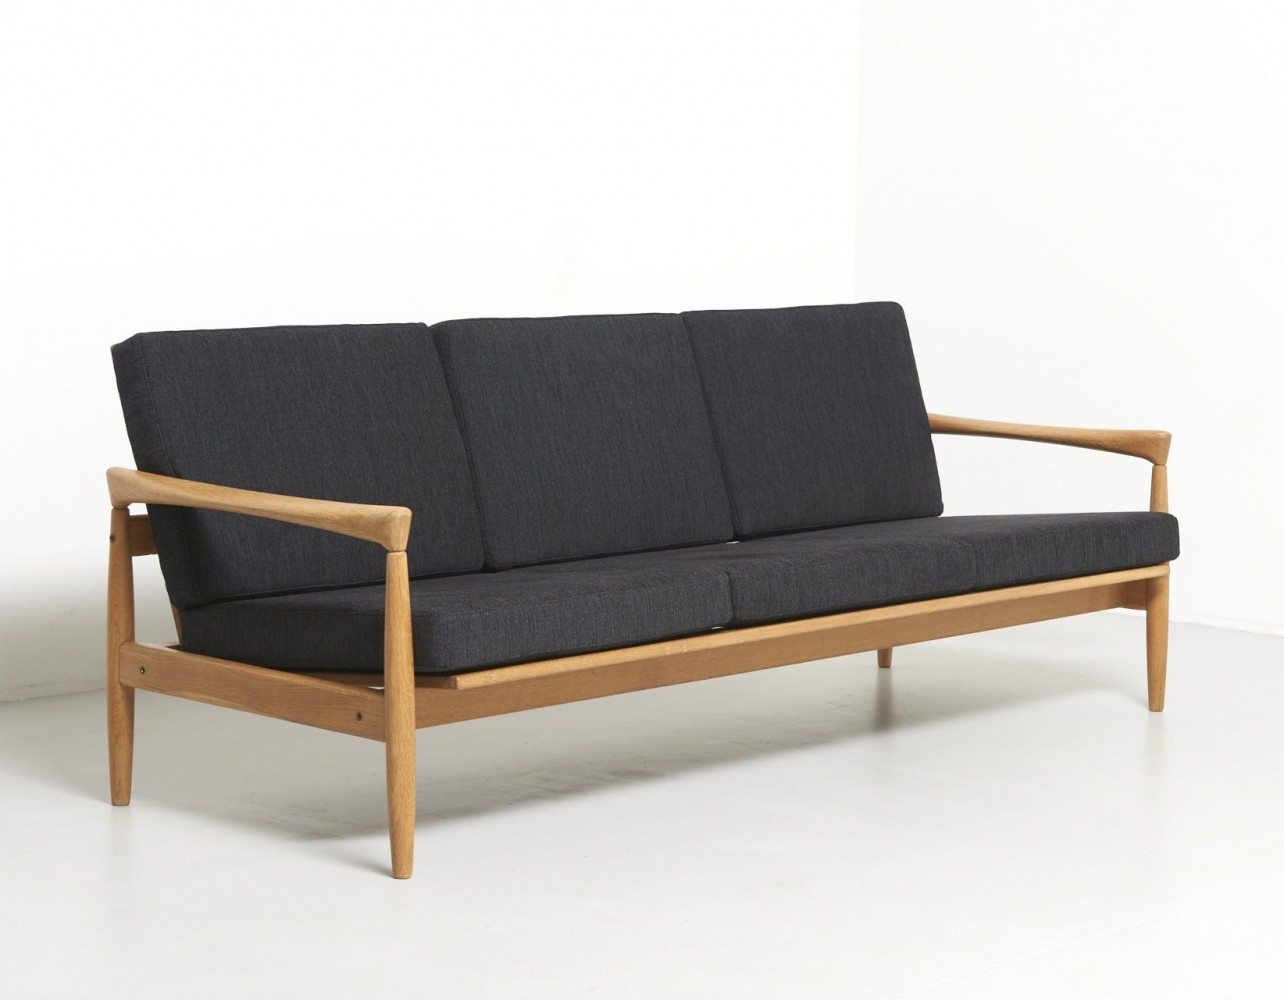 Vintage Three-Seater Sofa in Oak with Black Cushions